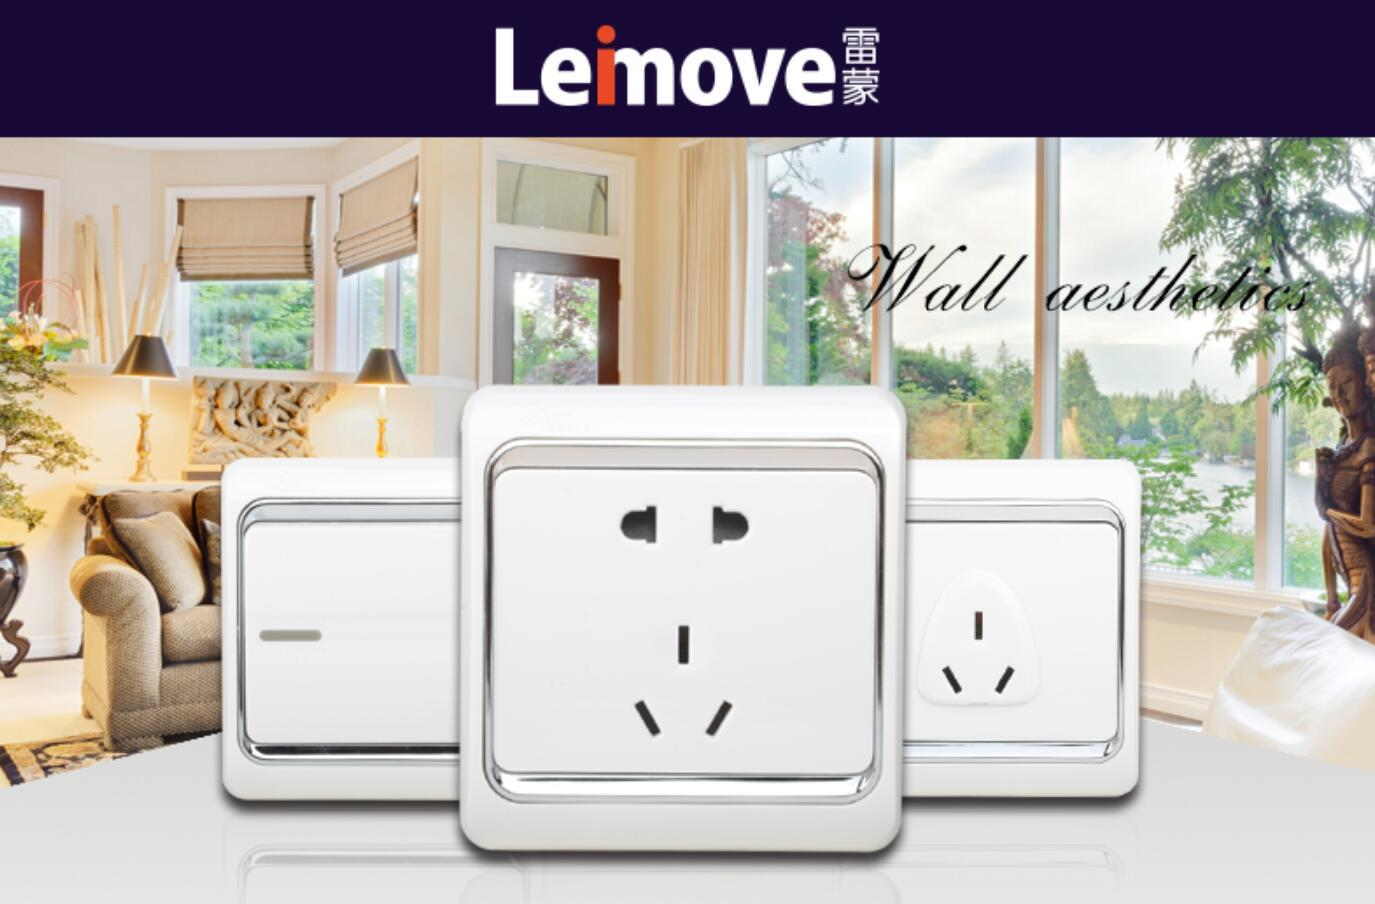 Leimove three position home switch popular for wholesale-1